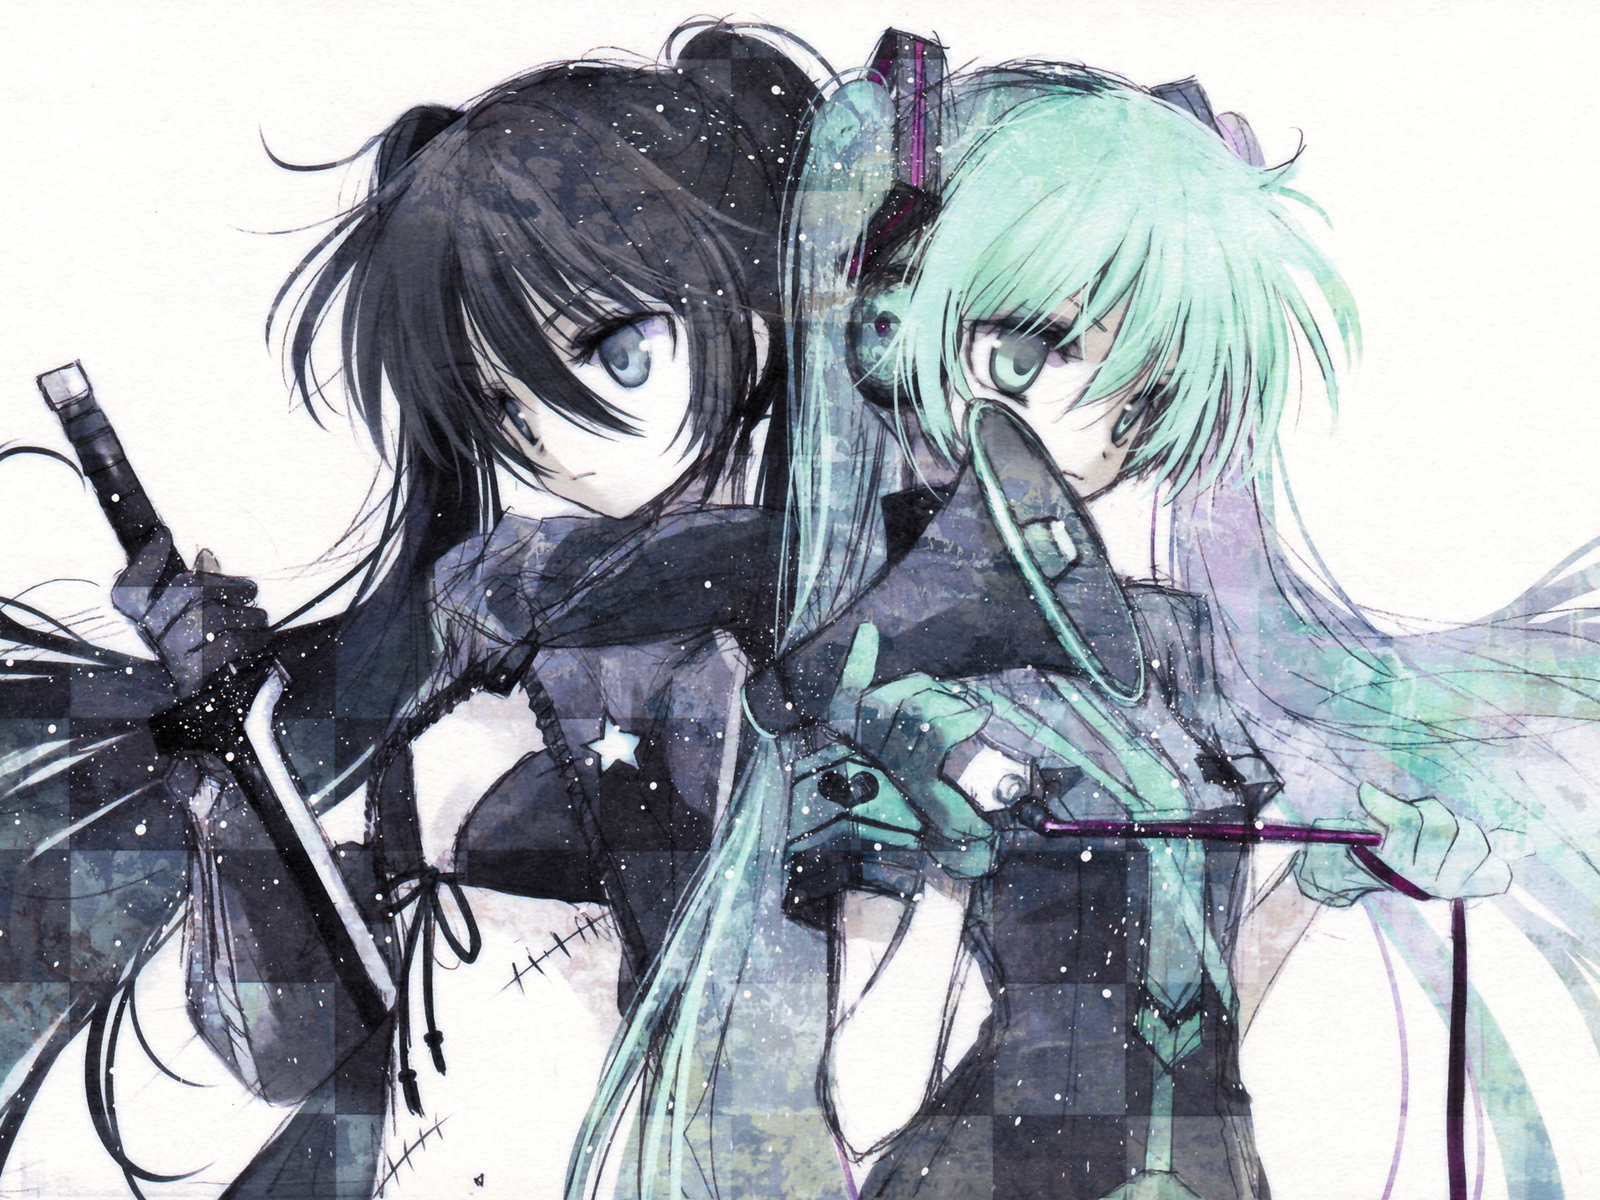 vocaloid, хацуне мику, hatsune miku, вокалоид, black rock shooter